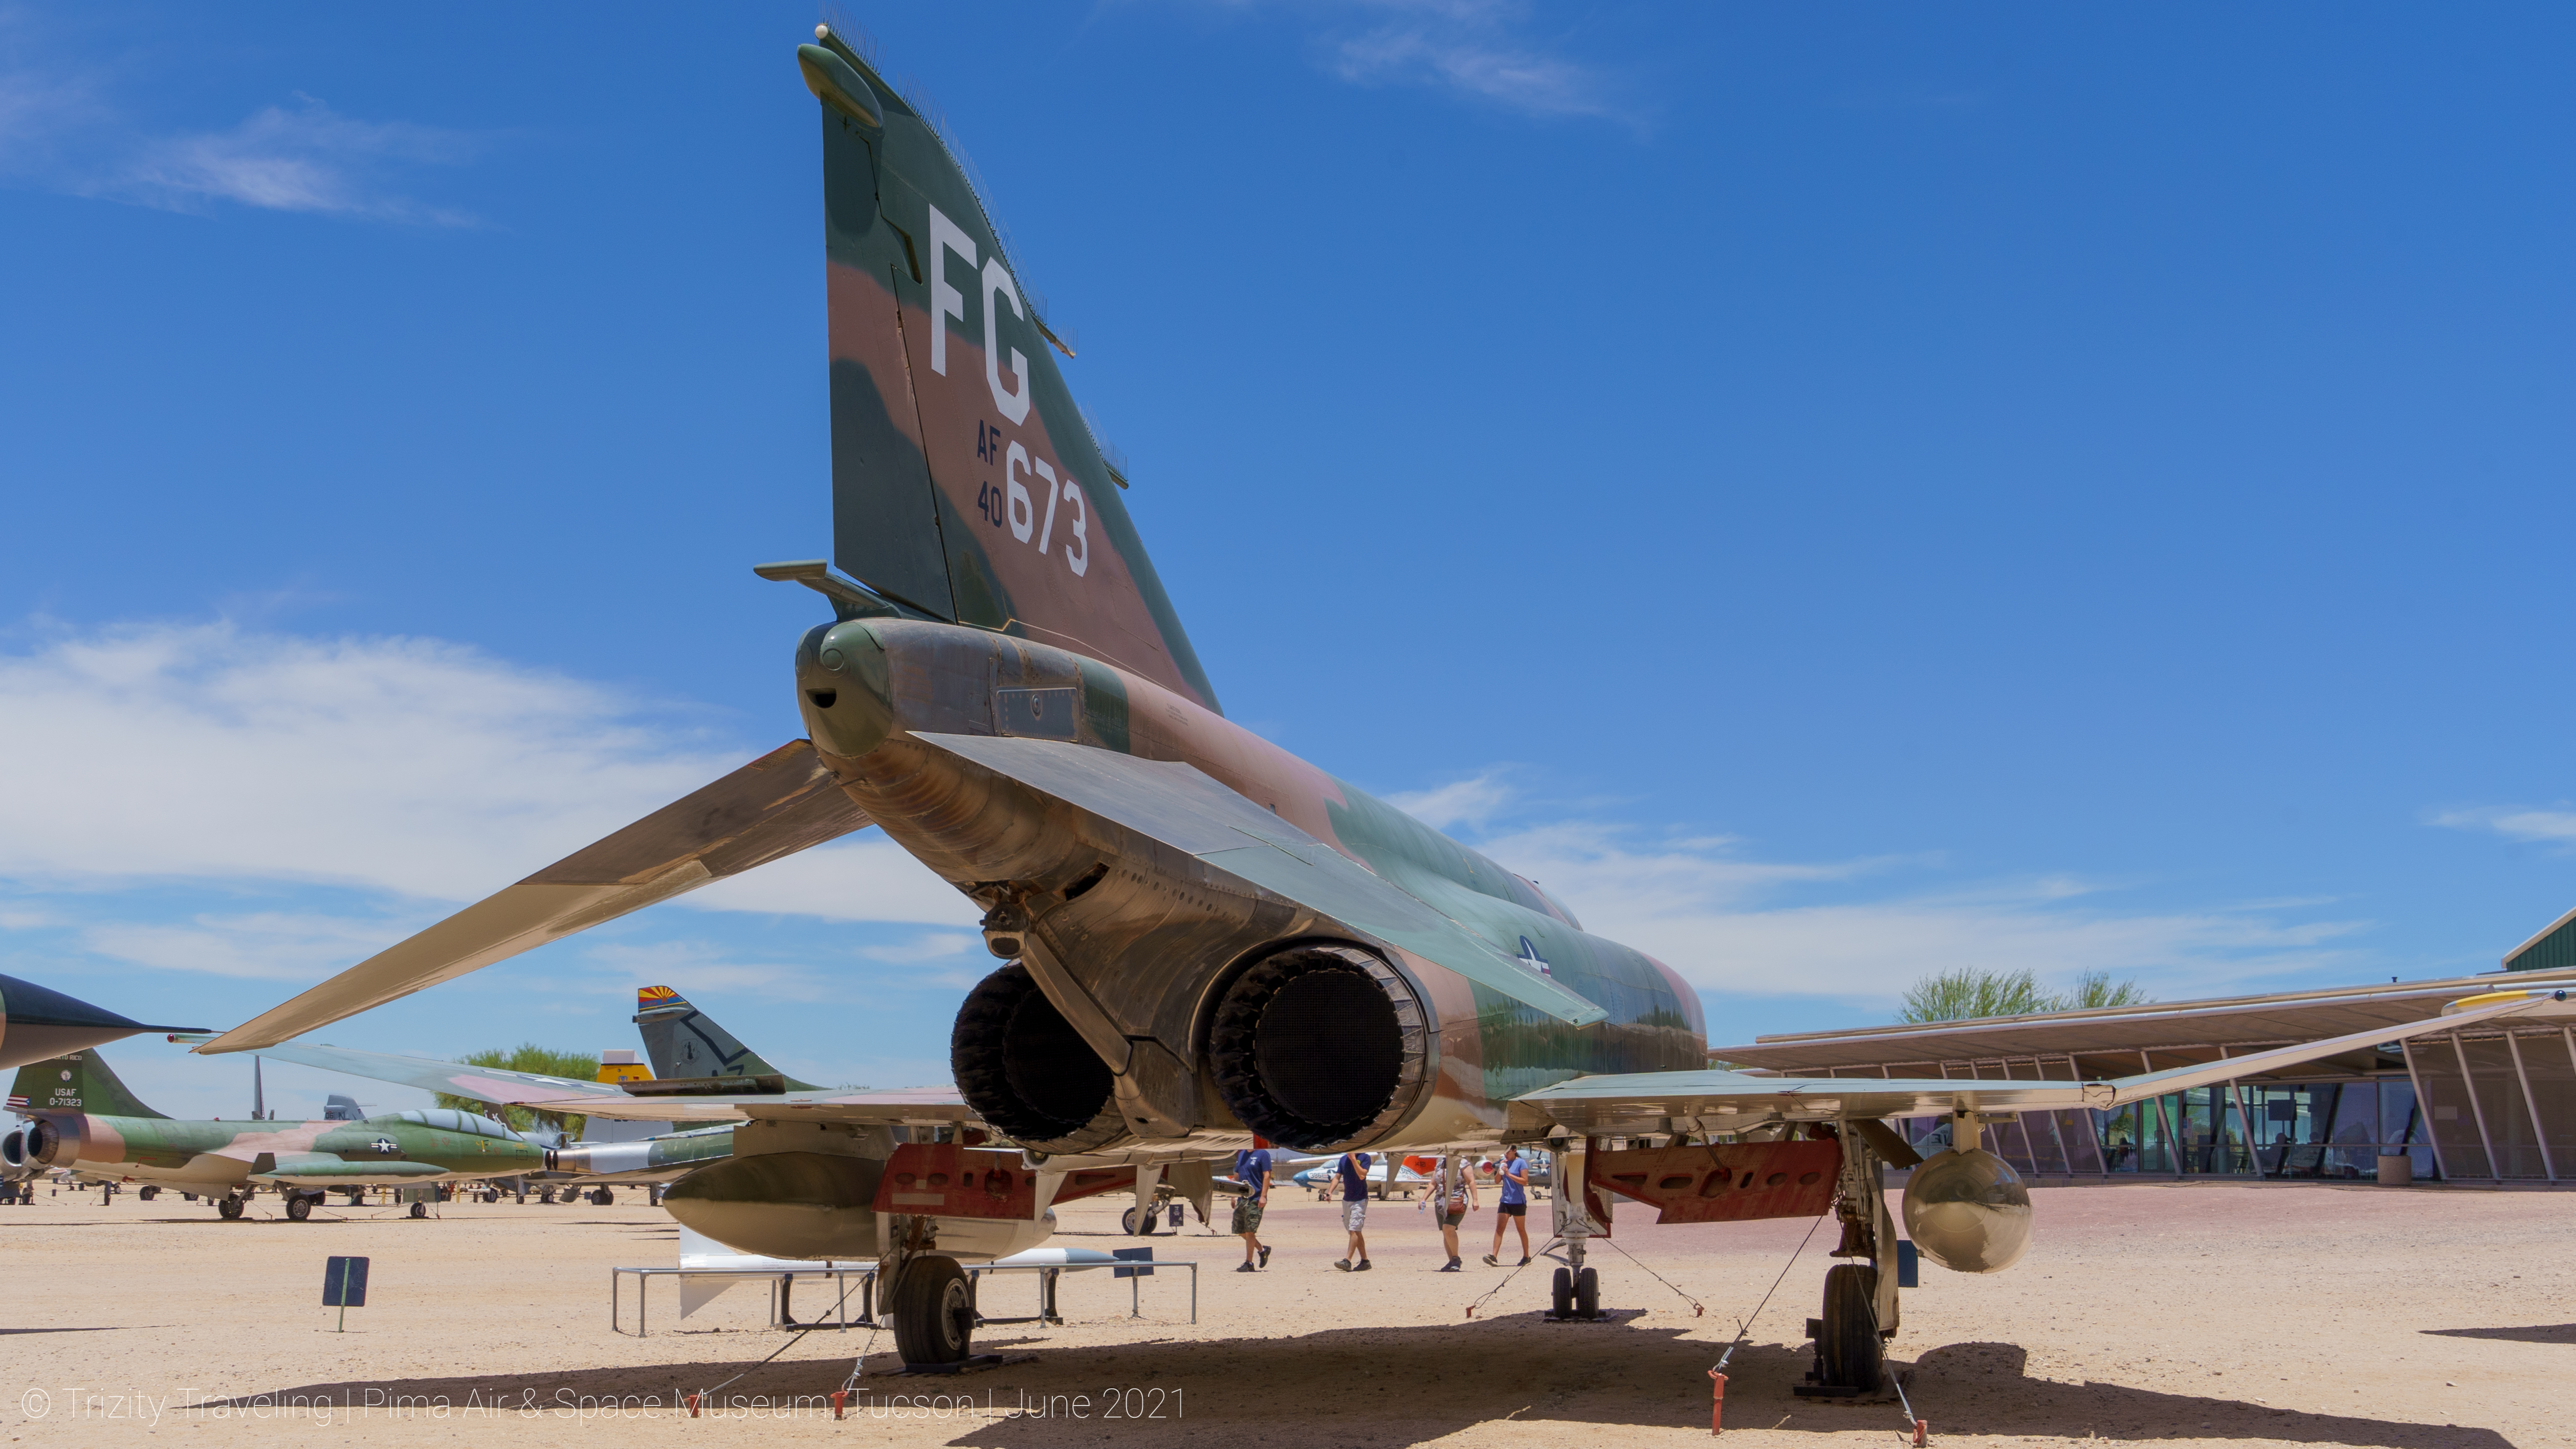 Visiting the Pima Air & Space Museum